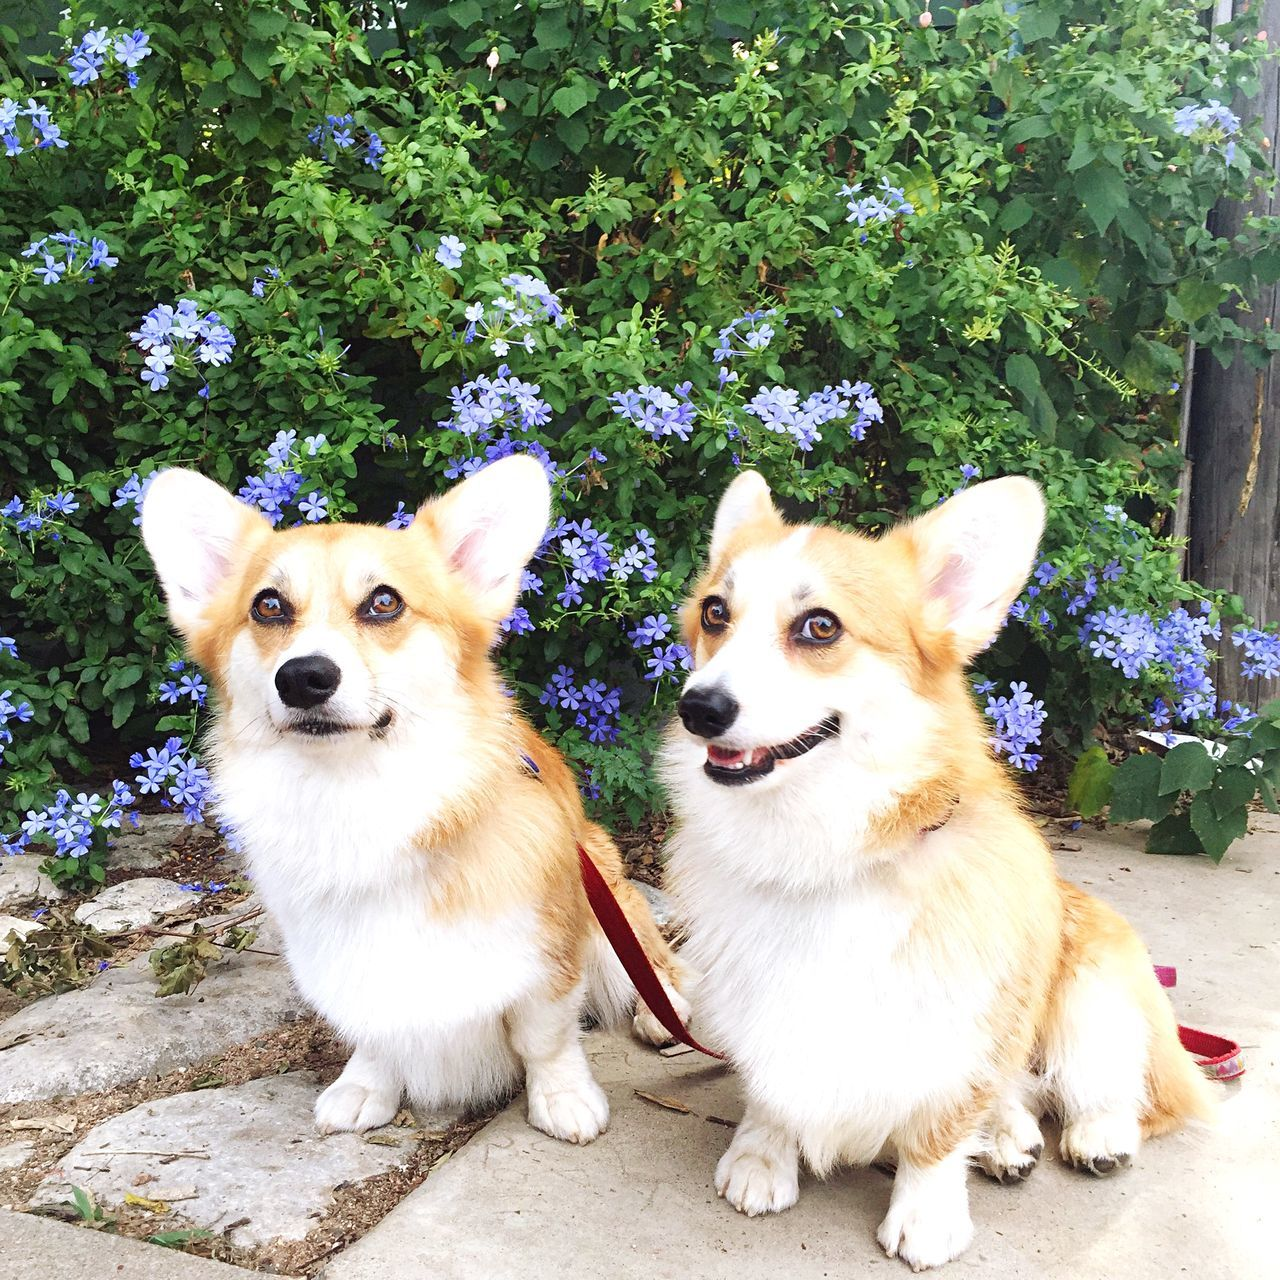 Corgi Corgis Puppy Love Puppy Puppies Dog Dogslife Dogsofinstagram